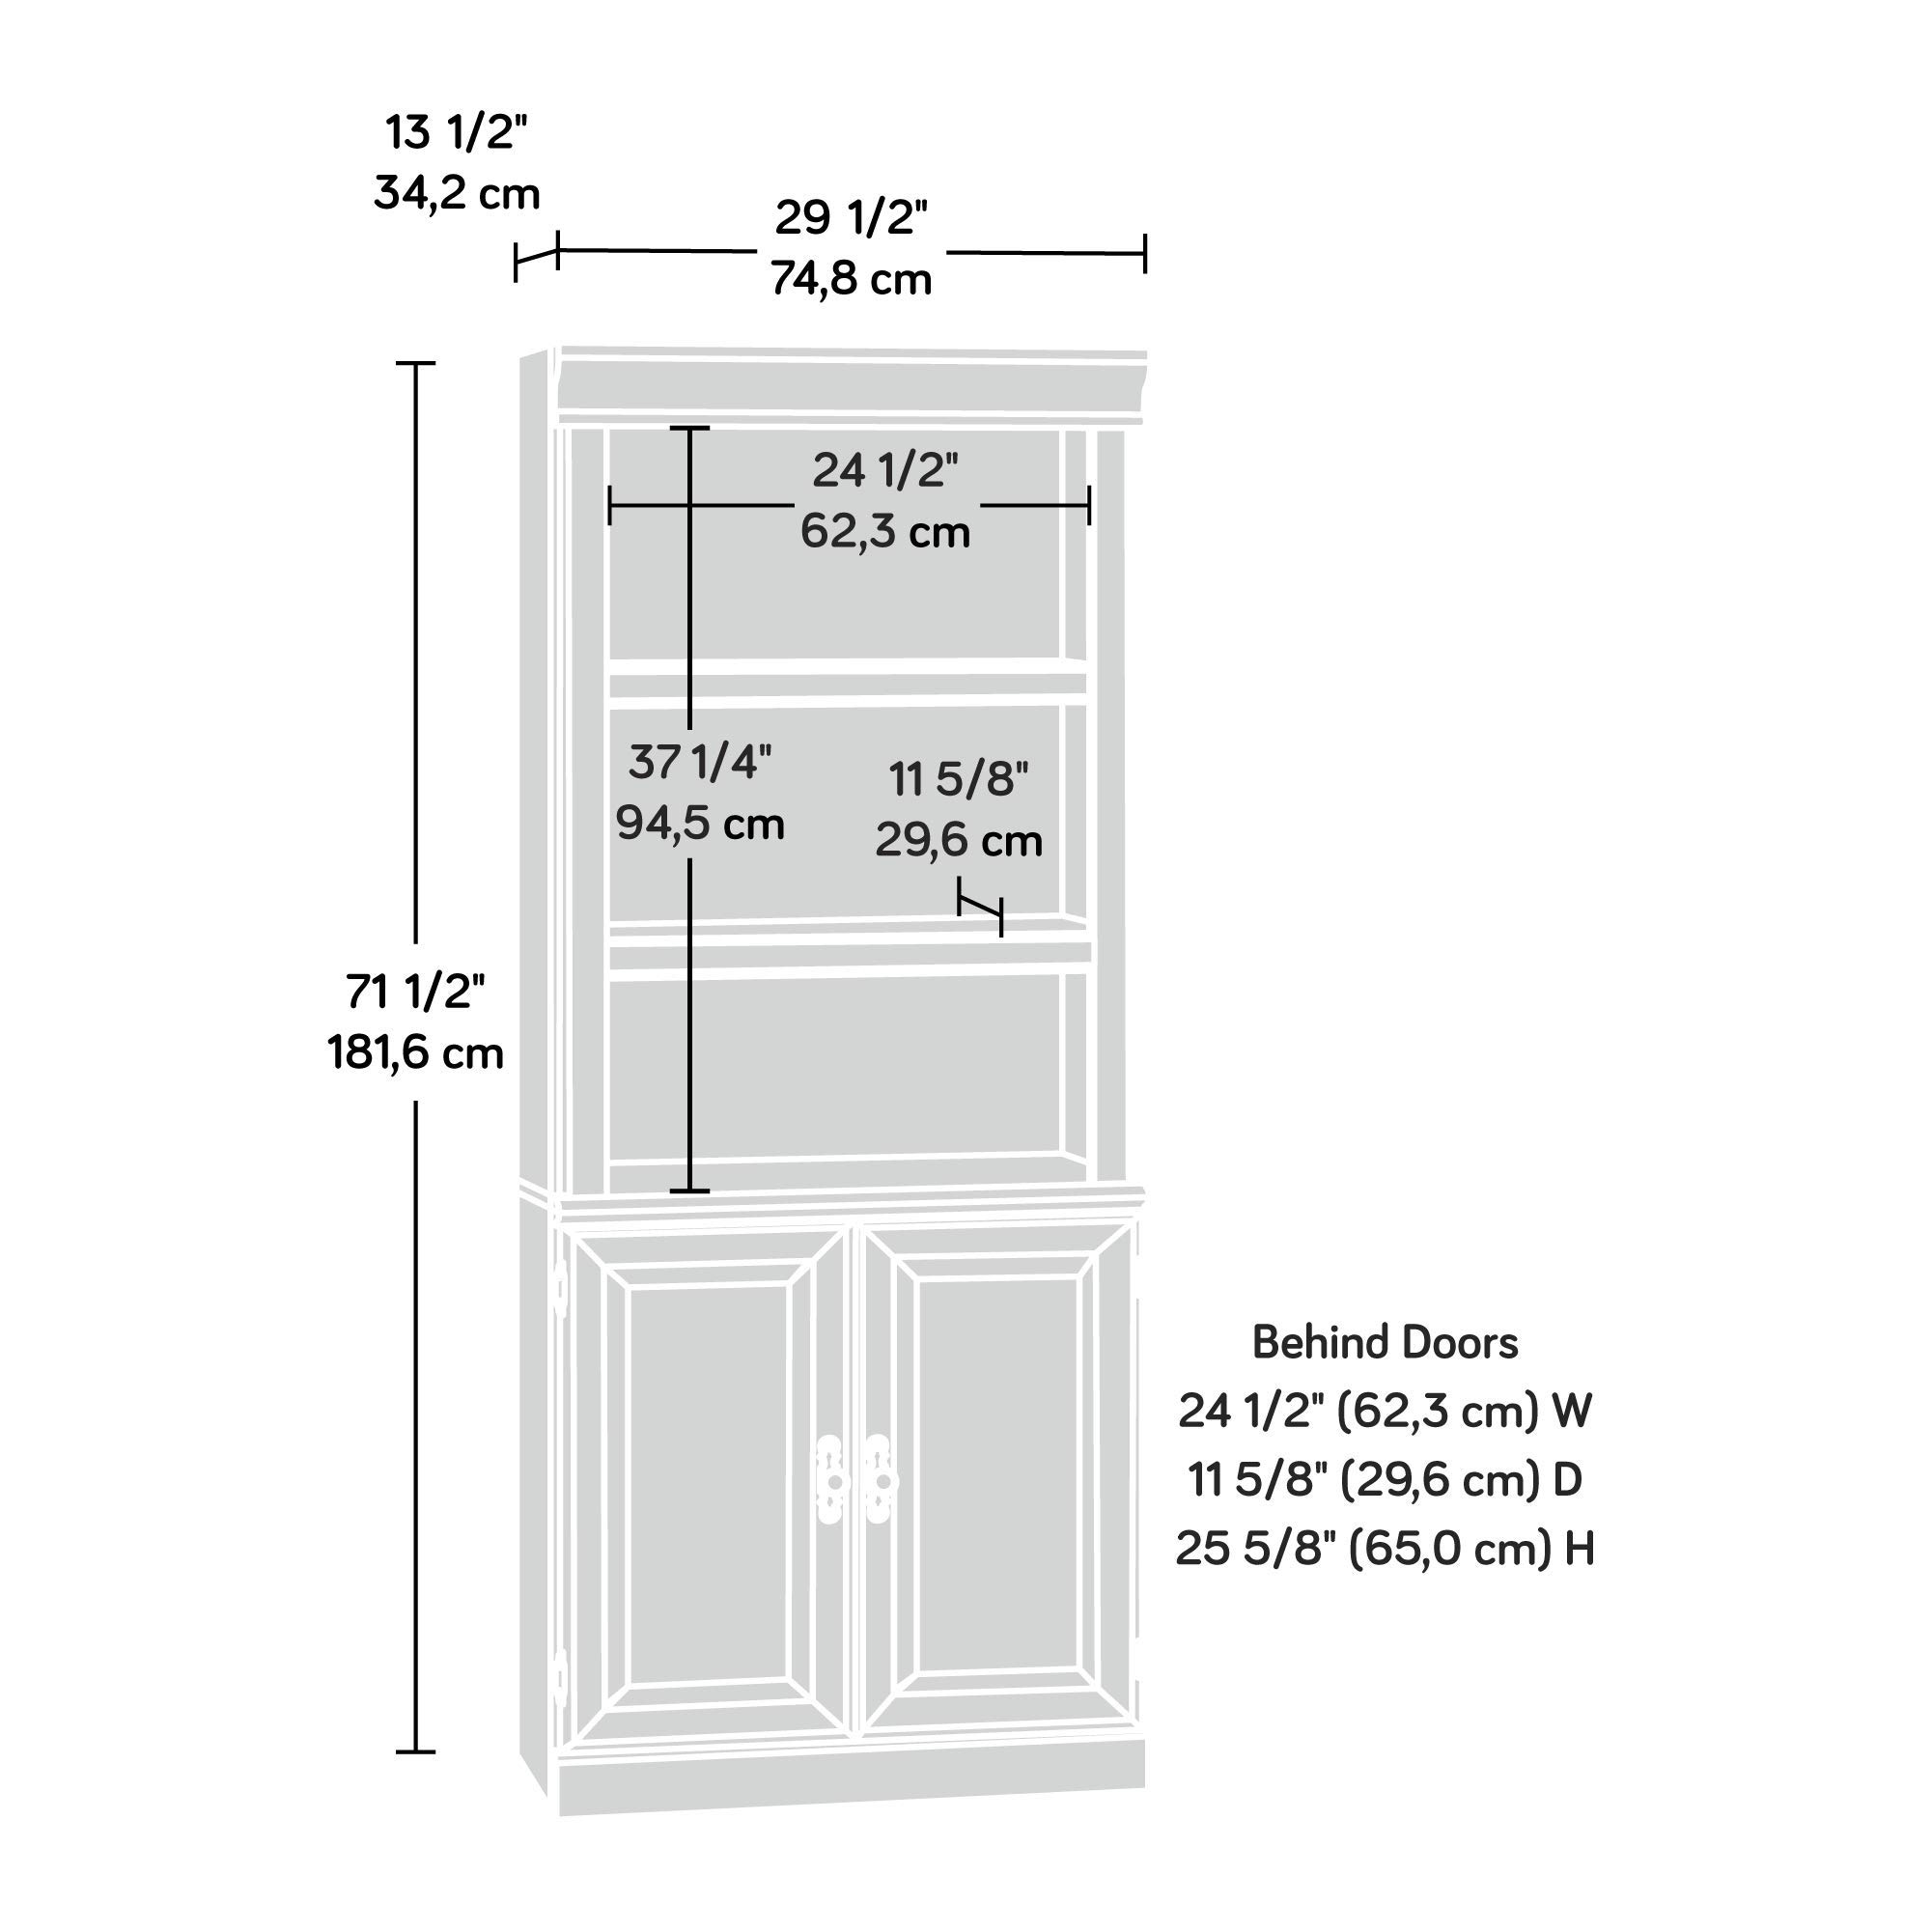 Sauder 418734 Orchard Hills Library with Doors, L: 29.45'' x W: 13.47'' x H: 71.50'', Milled Cherry finish by Sauder (Image #3)